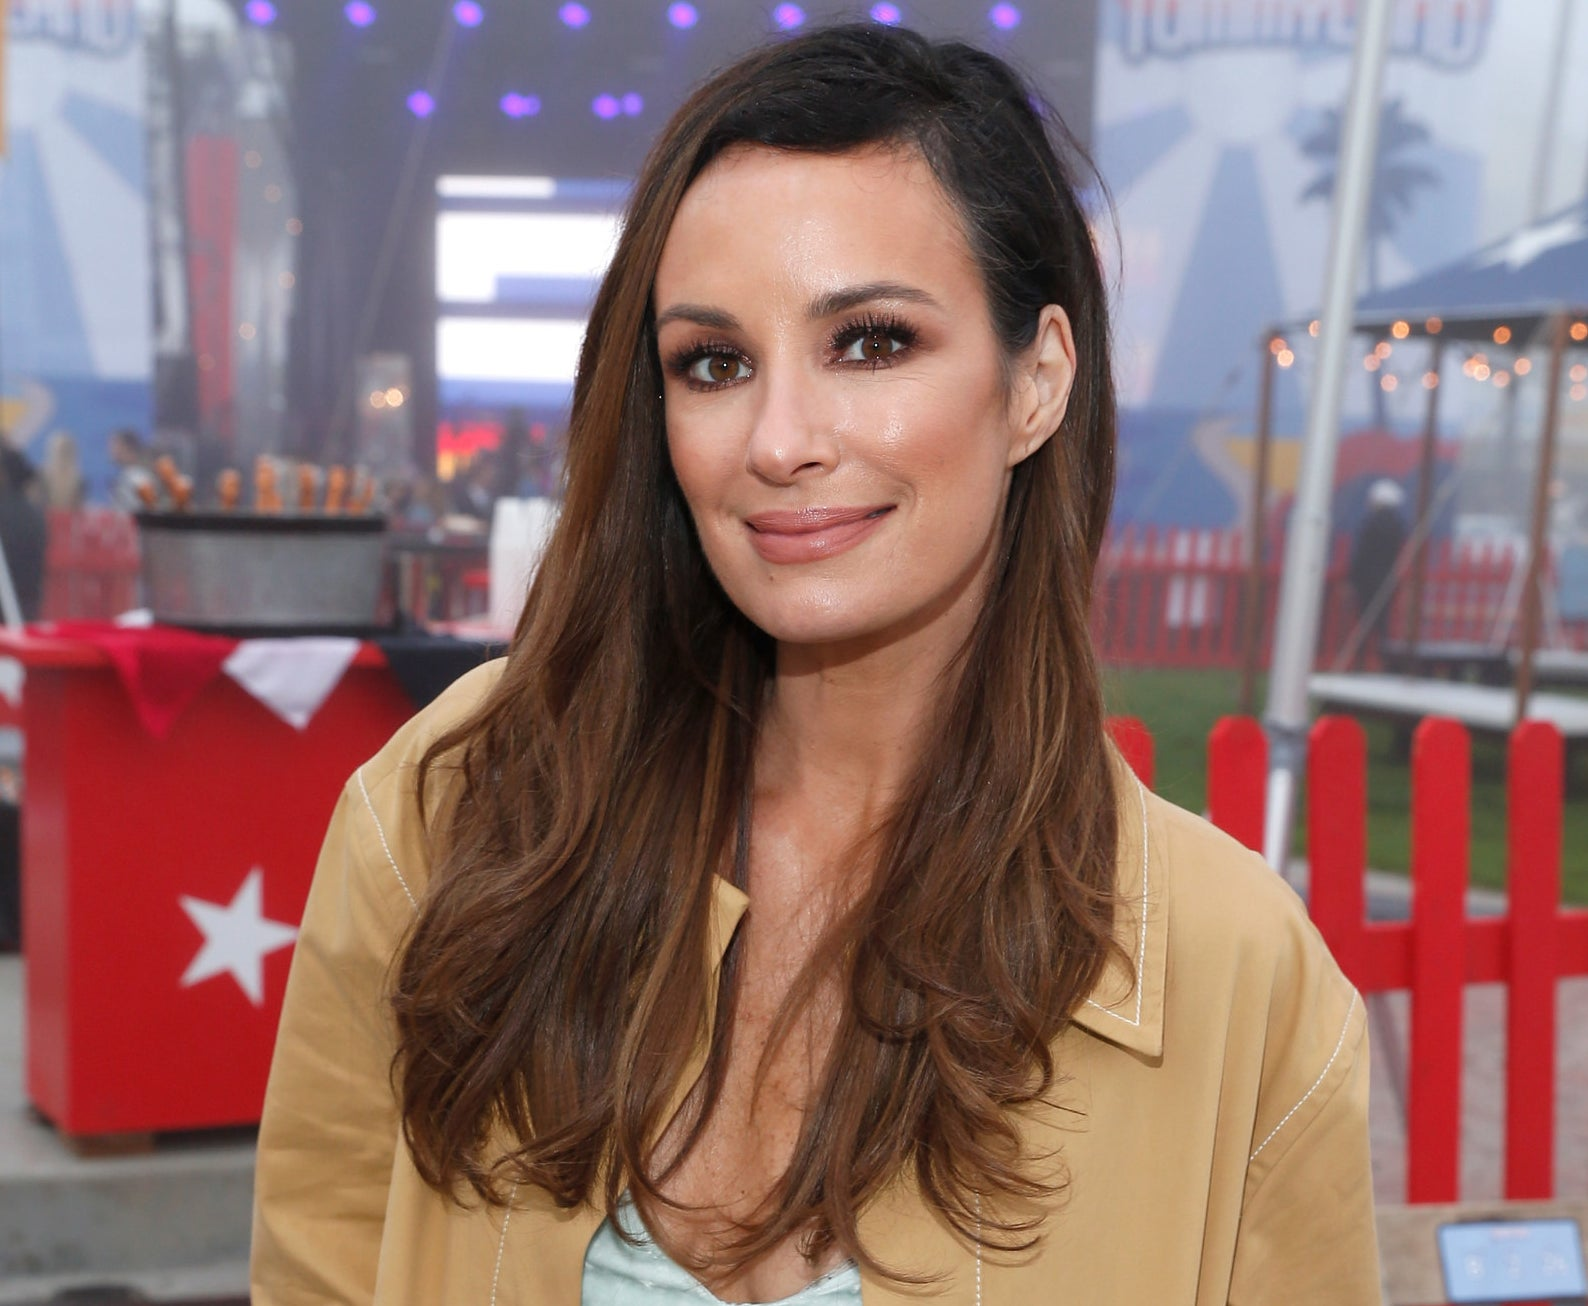 It's been nearly two months since Catt Sadler  announced her departure  from E! after learning her male colleague, Jason Kennedy, was being paid double her salary.